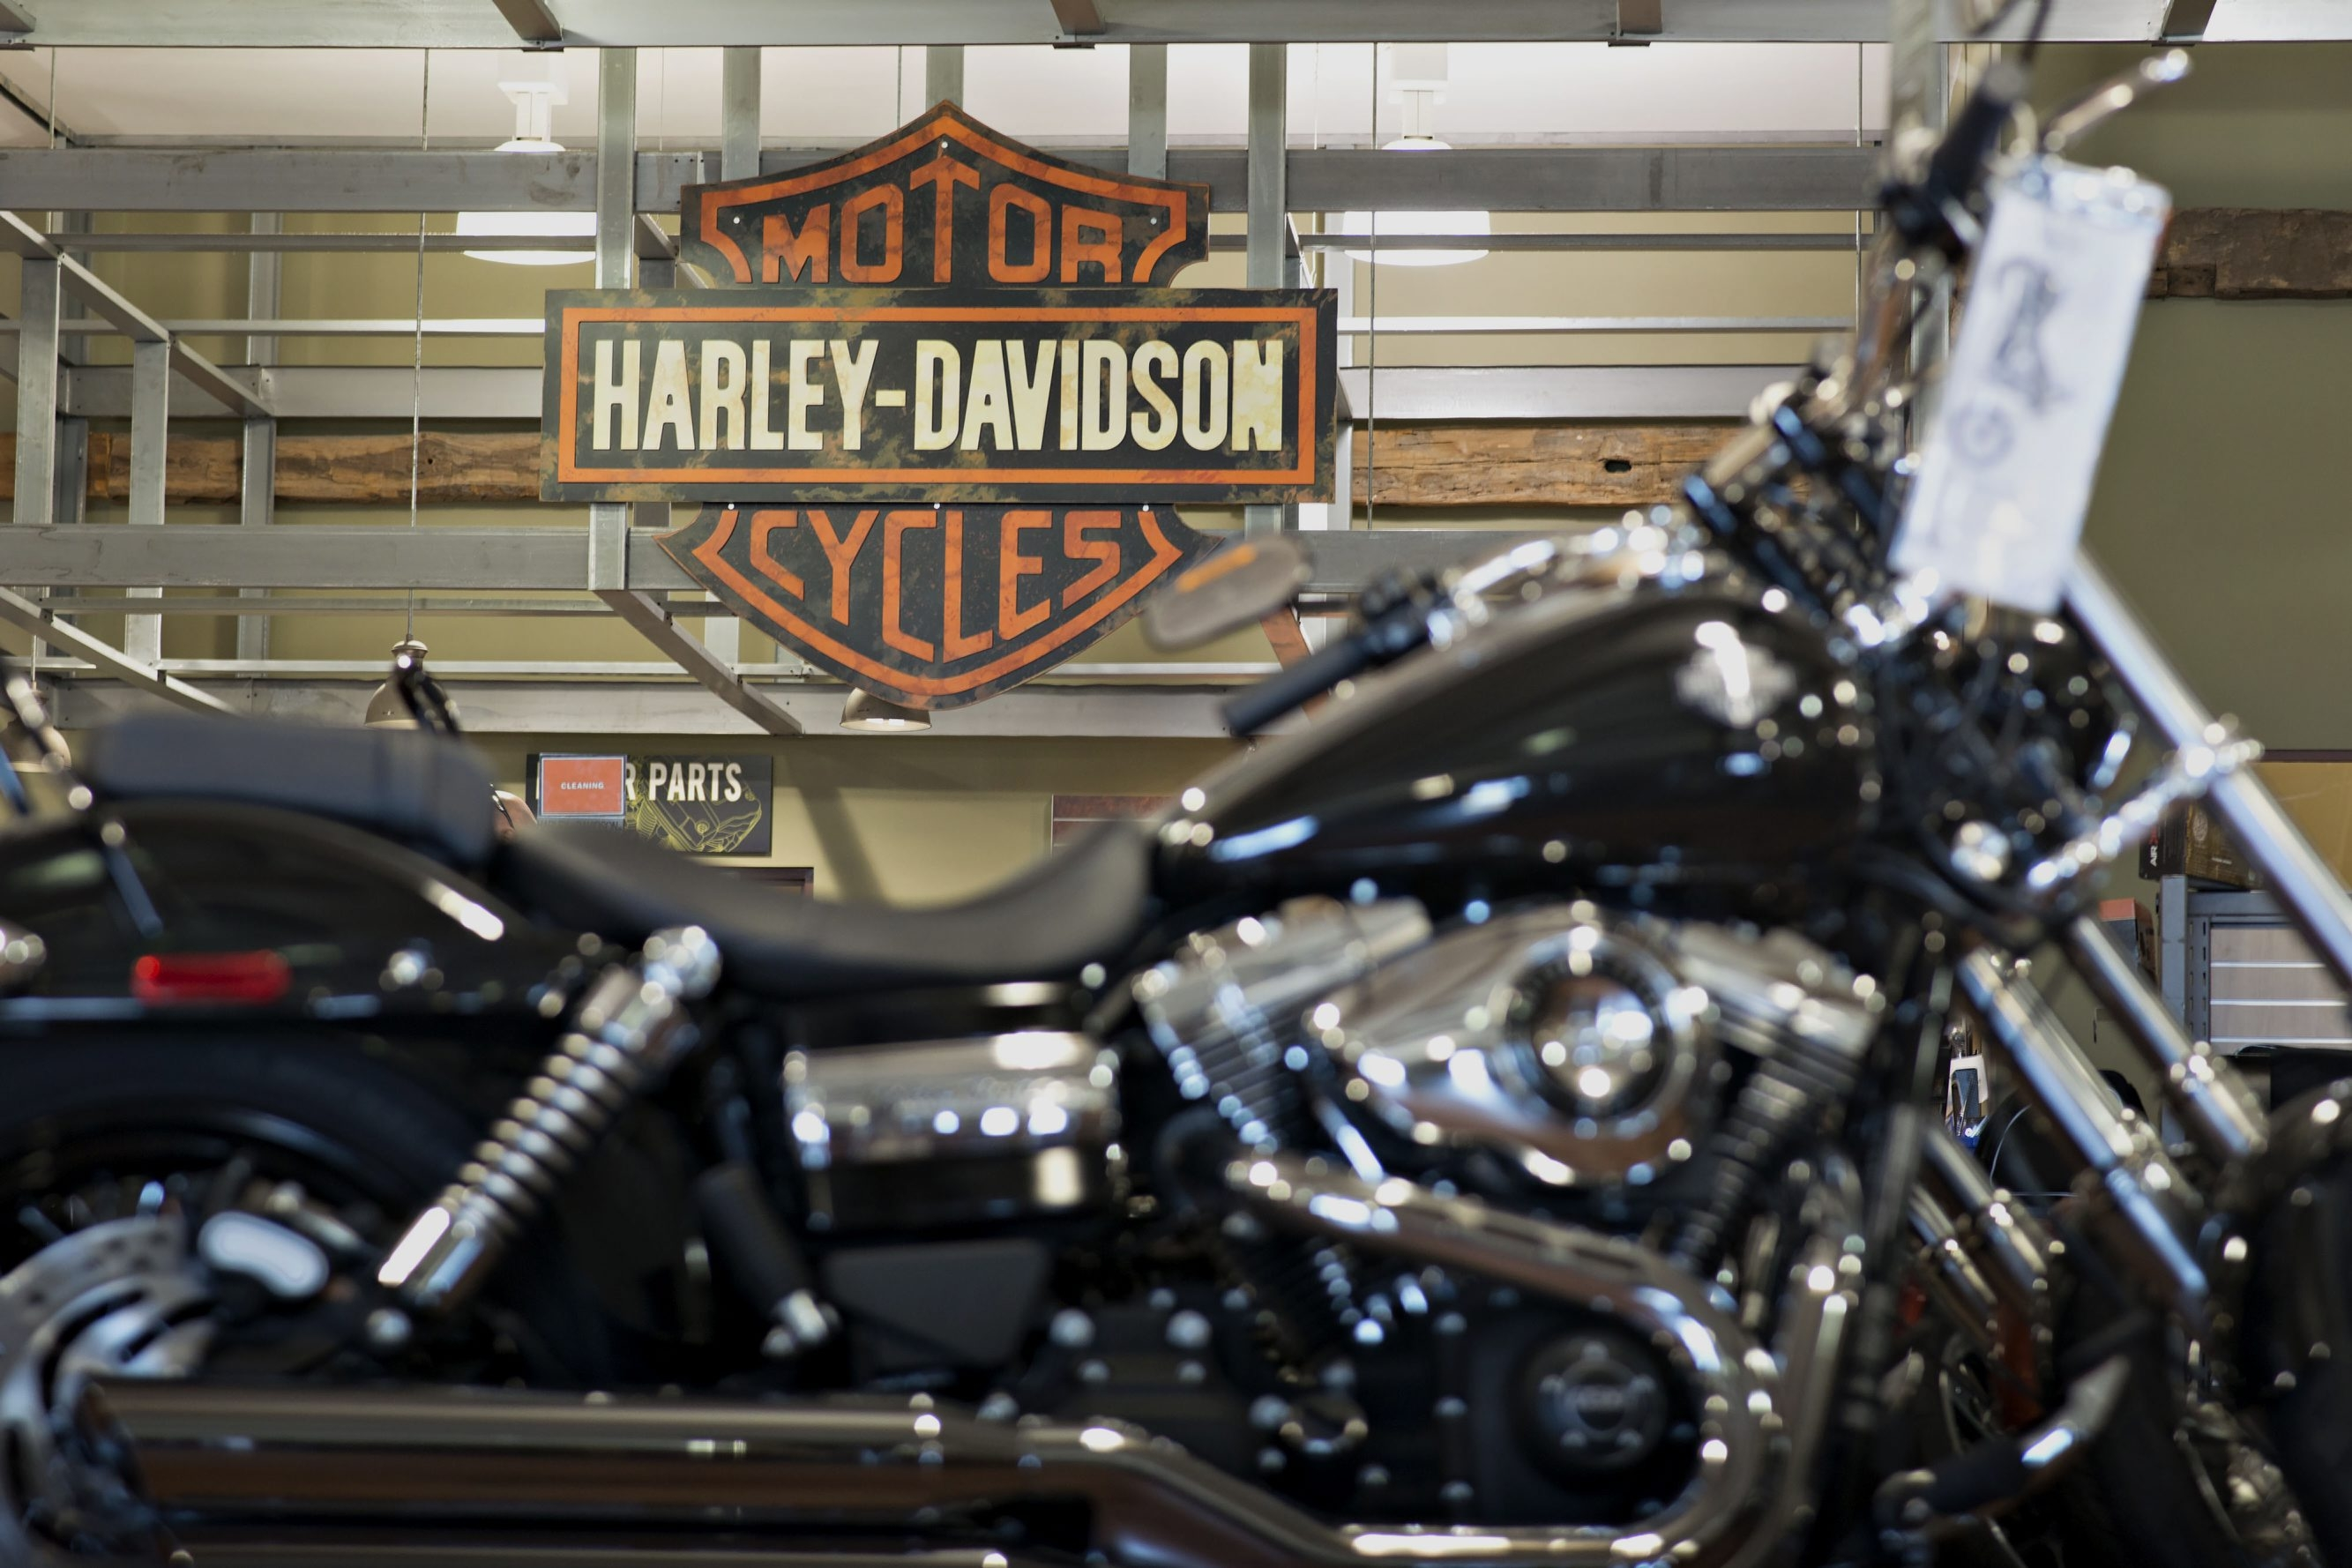 A 2014 Harley-Davidson Wide Glide motorcycle sits on display at the Starved Rock Harley-Davidson dealership in Ottawa, Illinois, U.S., on Tuesday, April 22, 2014. Harley-Davidson Inc. rose the most in almost 18 months after reporting first-quarter profit that topped analysts' estimates as retail sales of motorcycles increased. Photographer: Daniel Acker/Bloomberg